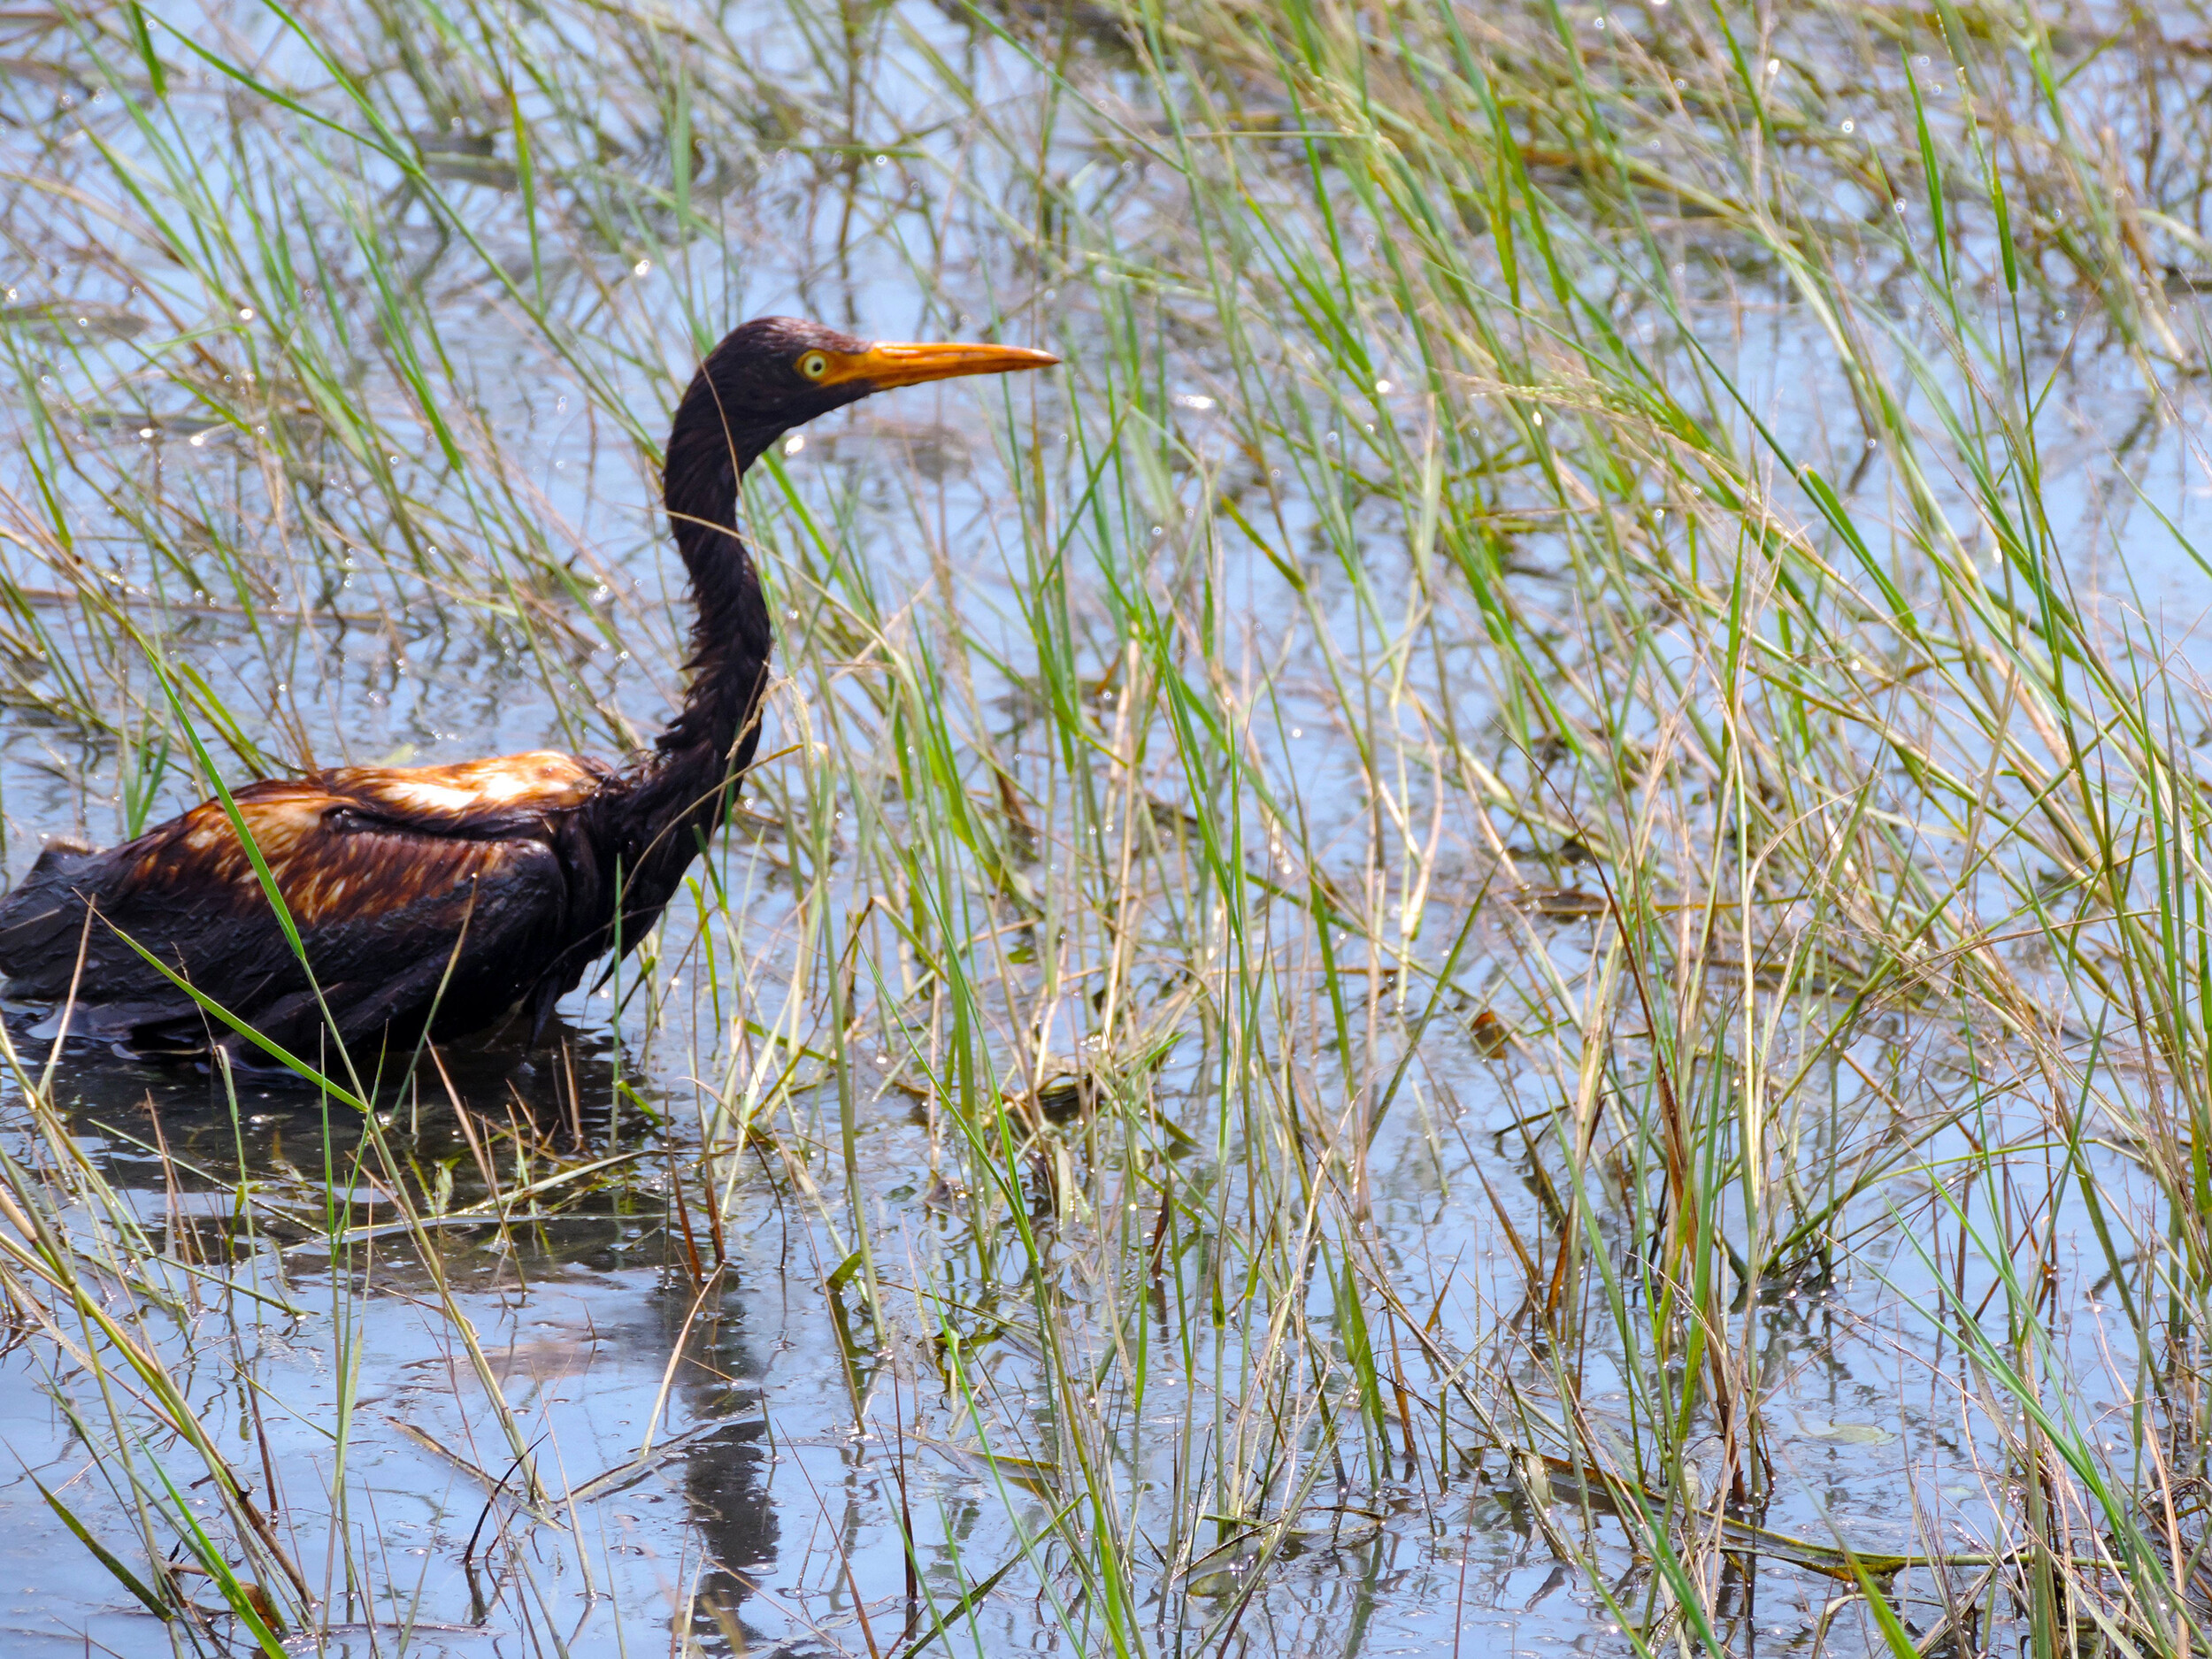 Over 100 birds have been found covered in oil as a result of spills caused by Hurricane Ida